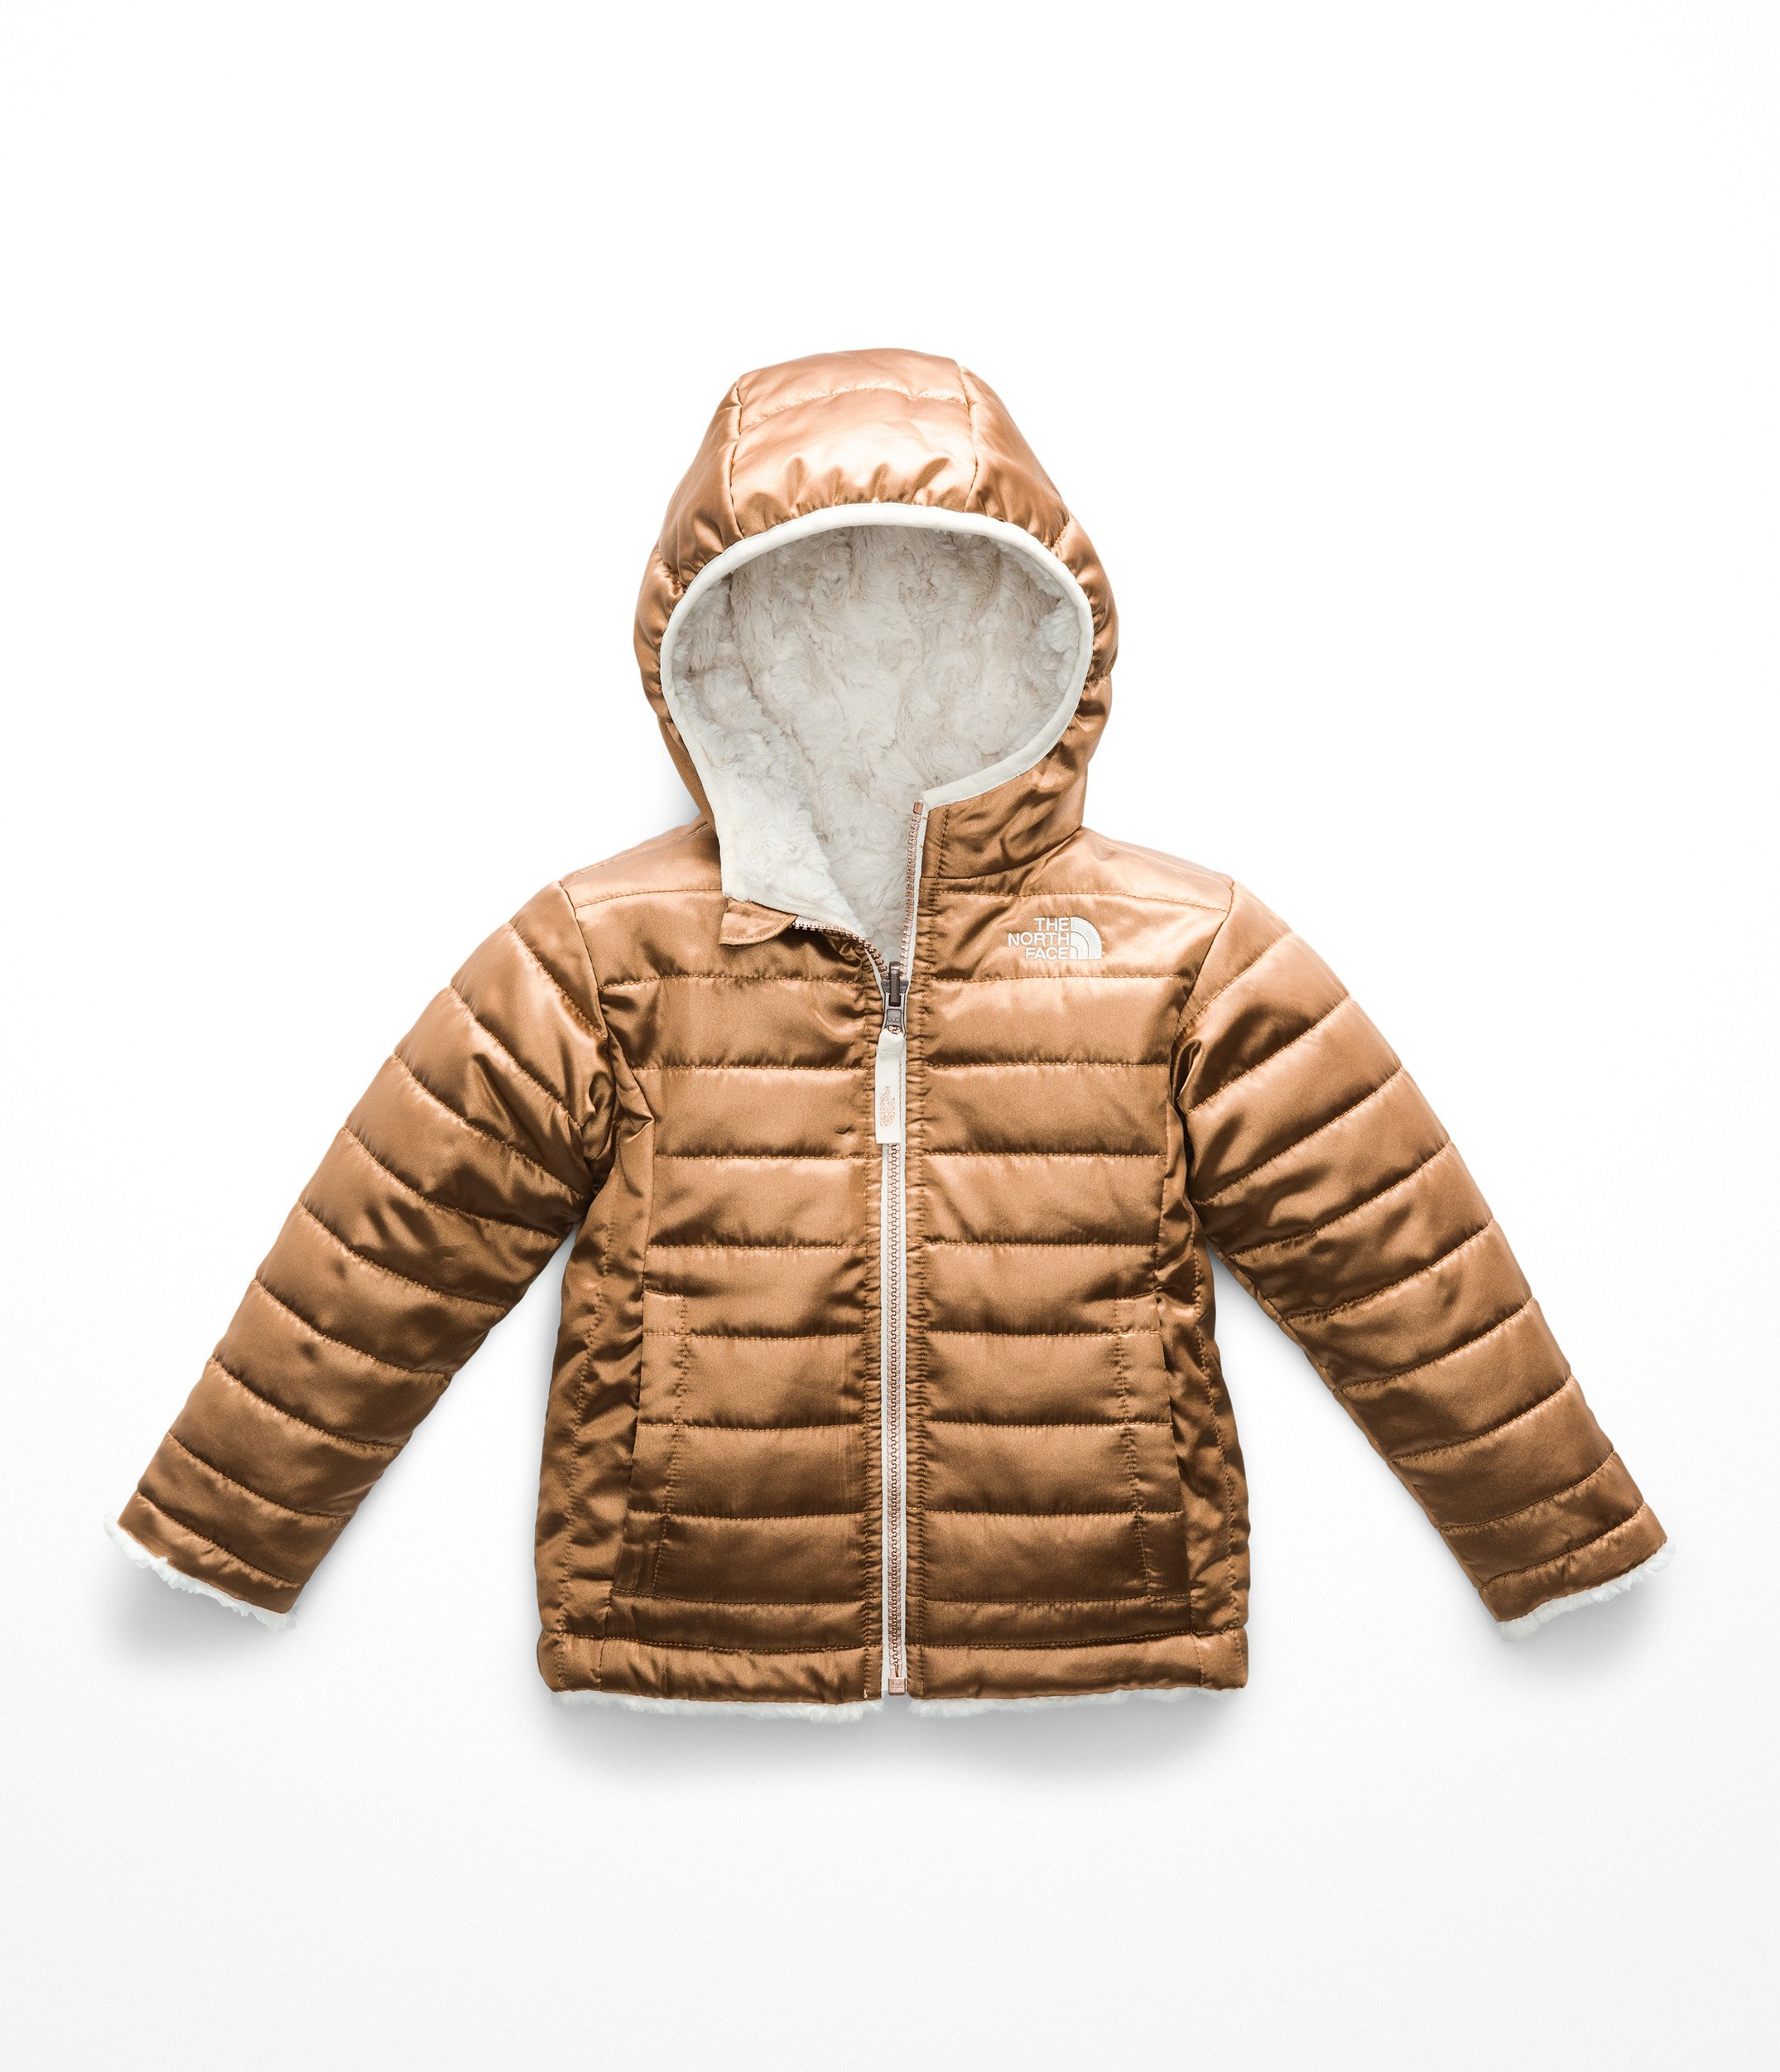 c671a411e The North Face Todd Girl's Reversible Mossbud Swirl Jacket - Metallic  Copper - 2T